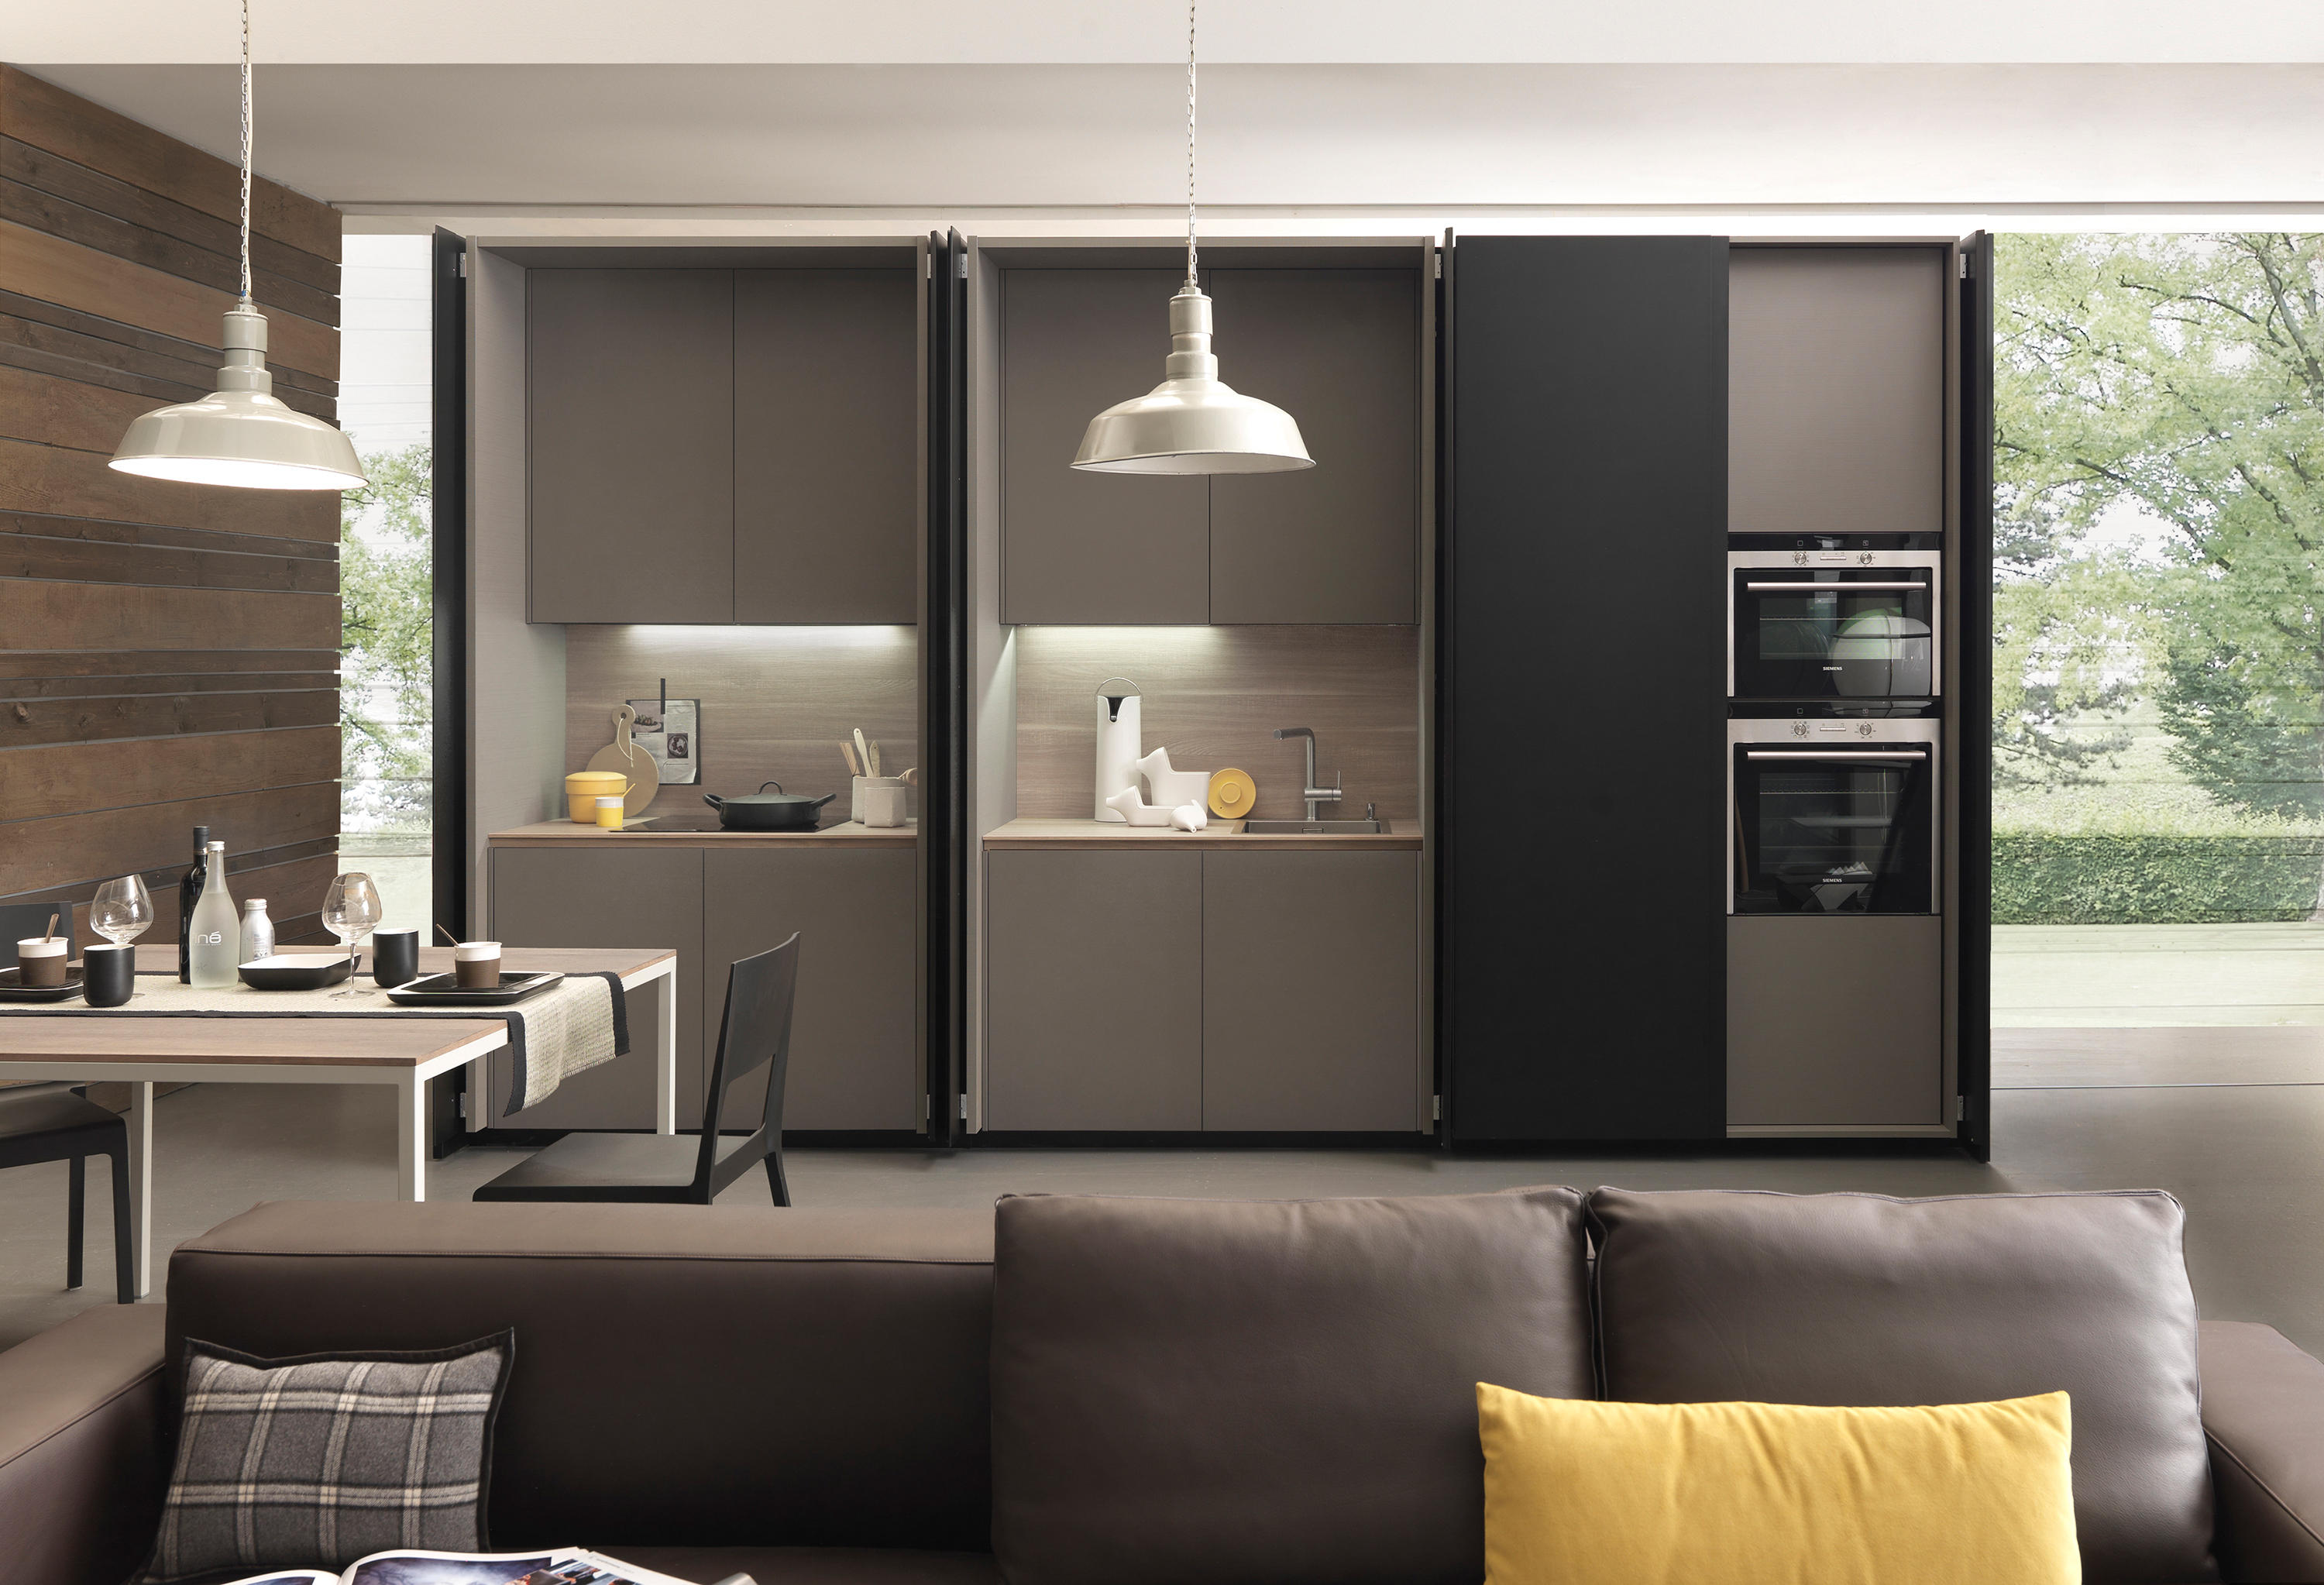 Kitchen closet 2 twenty architonic for Cucina in armadio